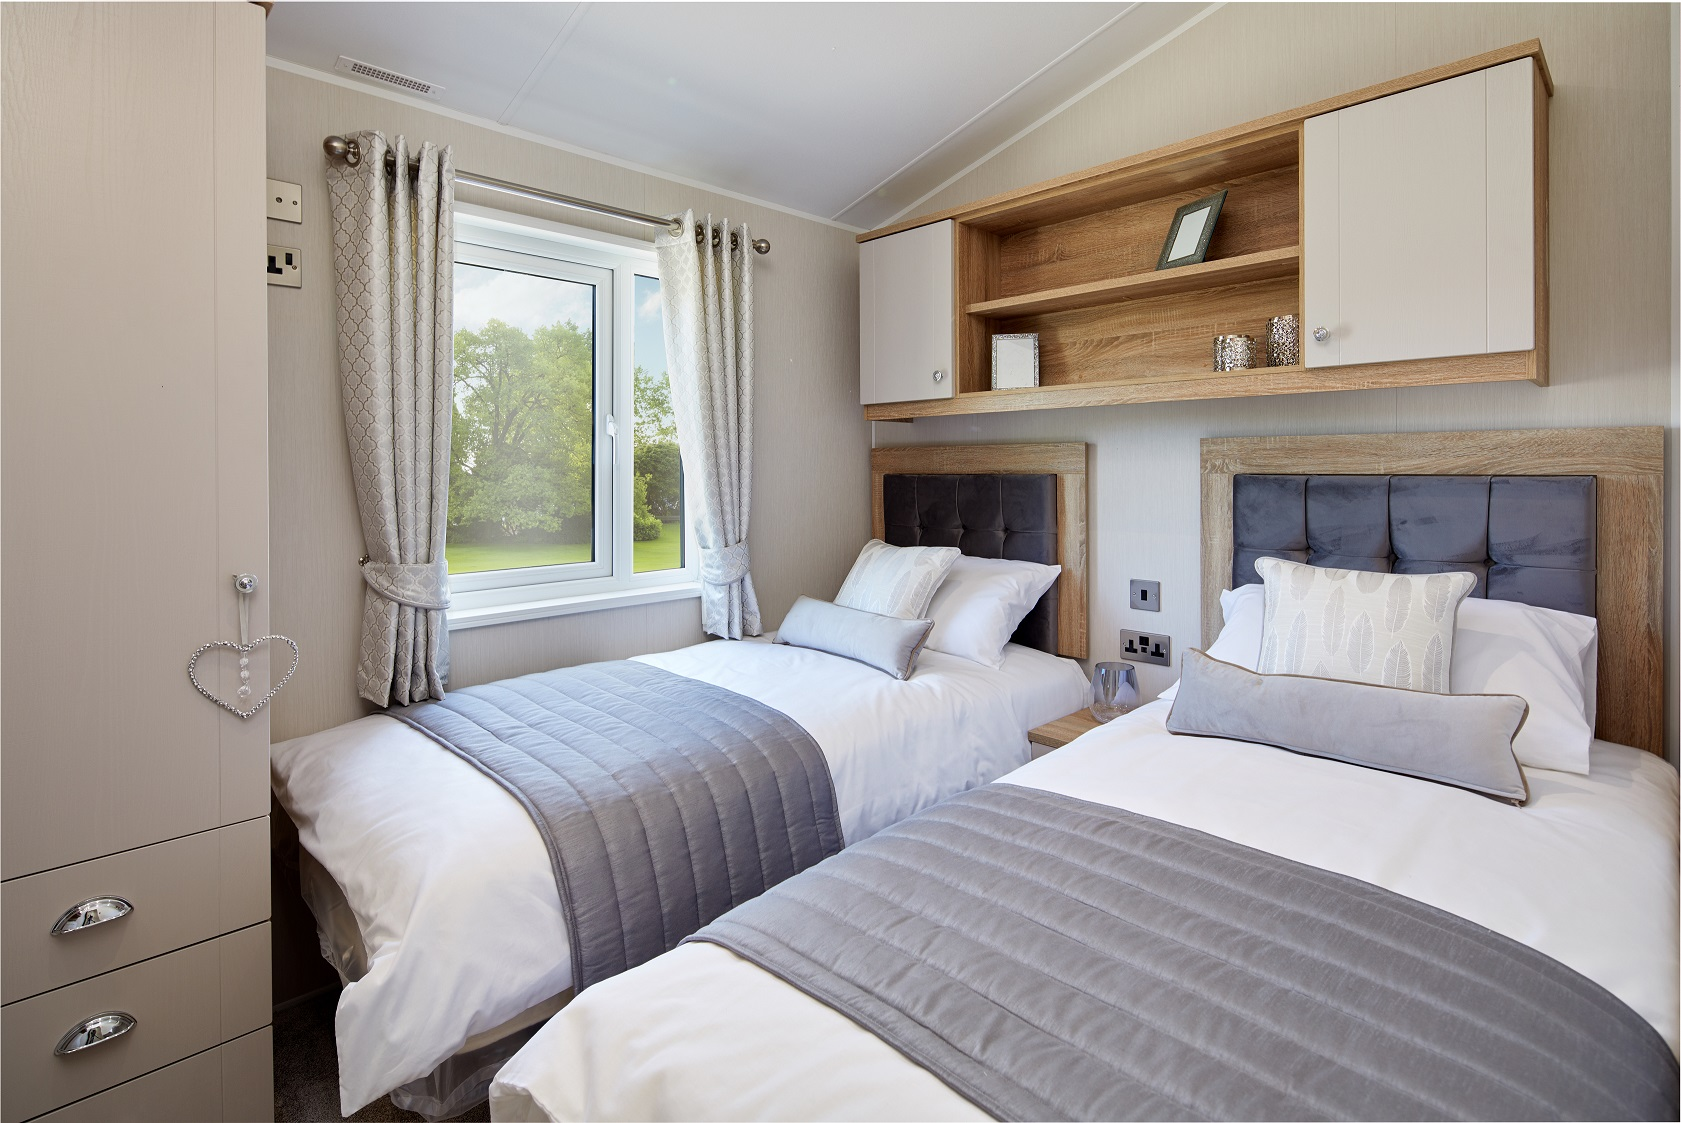 Willerby Vogue Classique: New Static Caravans and Holiday Homes for Sale, Clifton, Morpeth Image 4